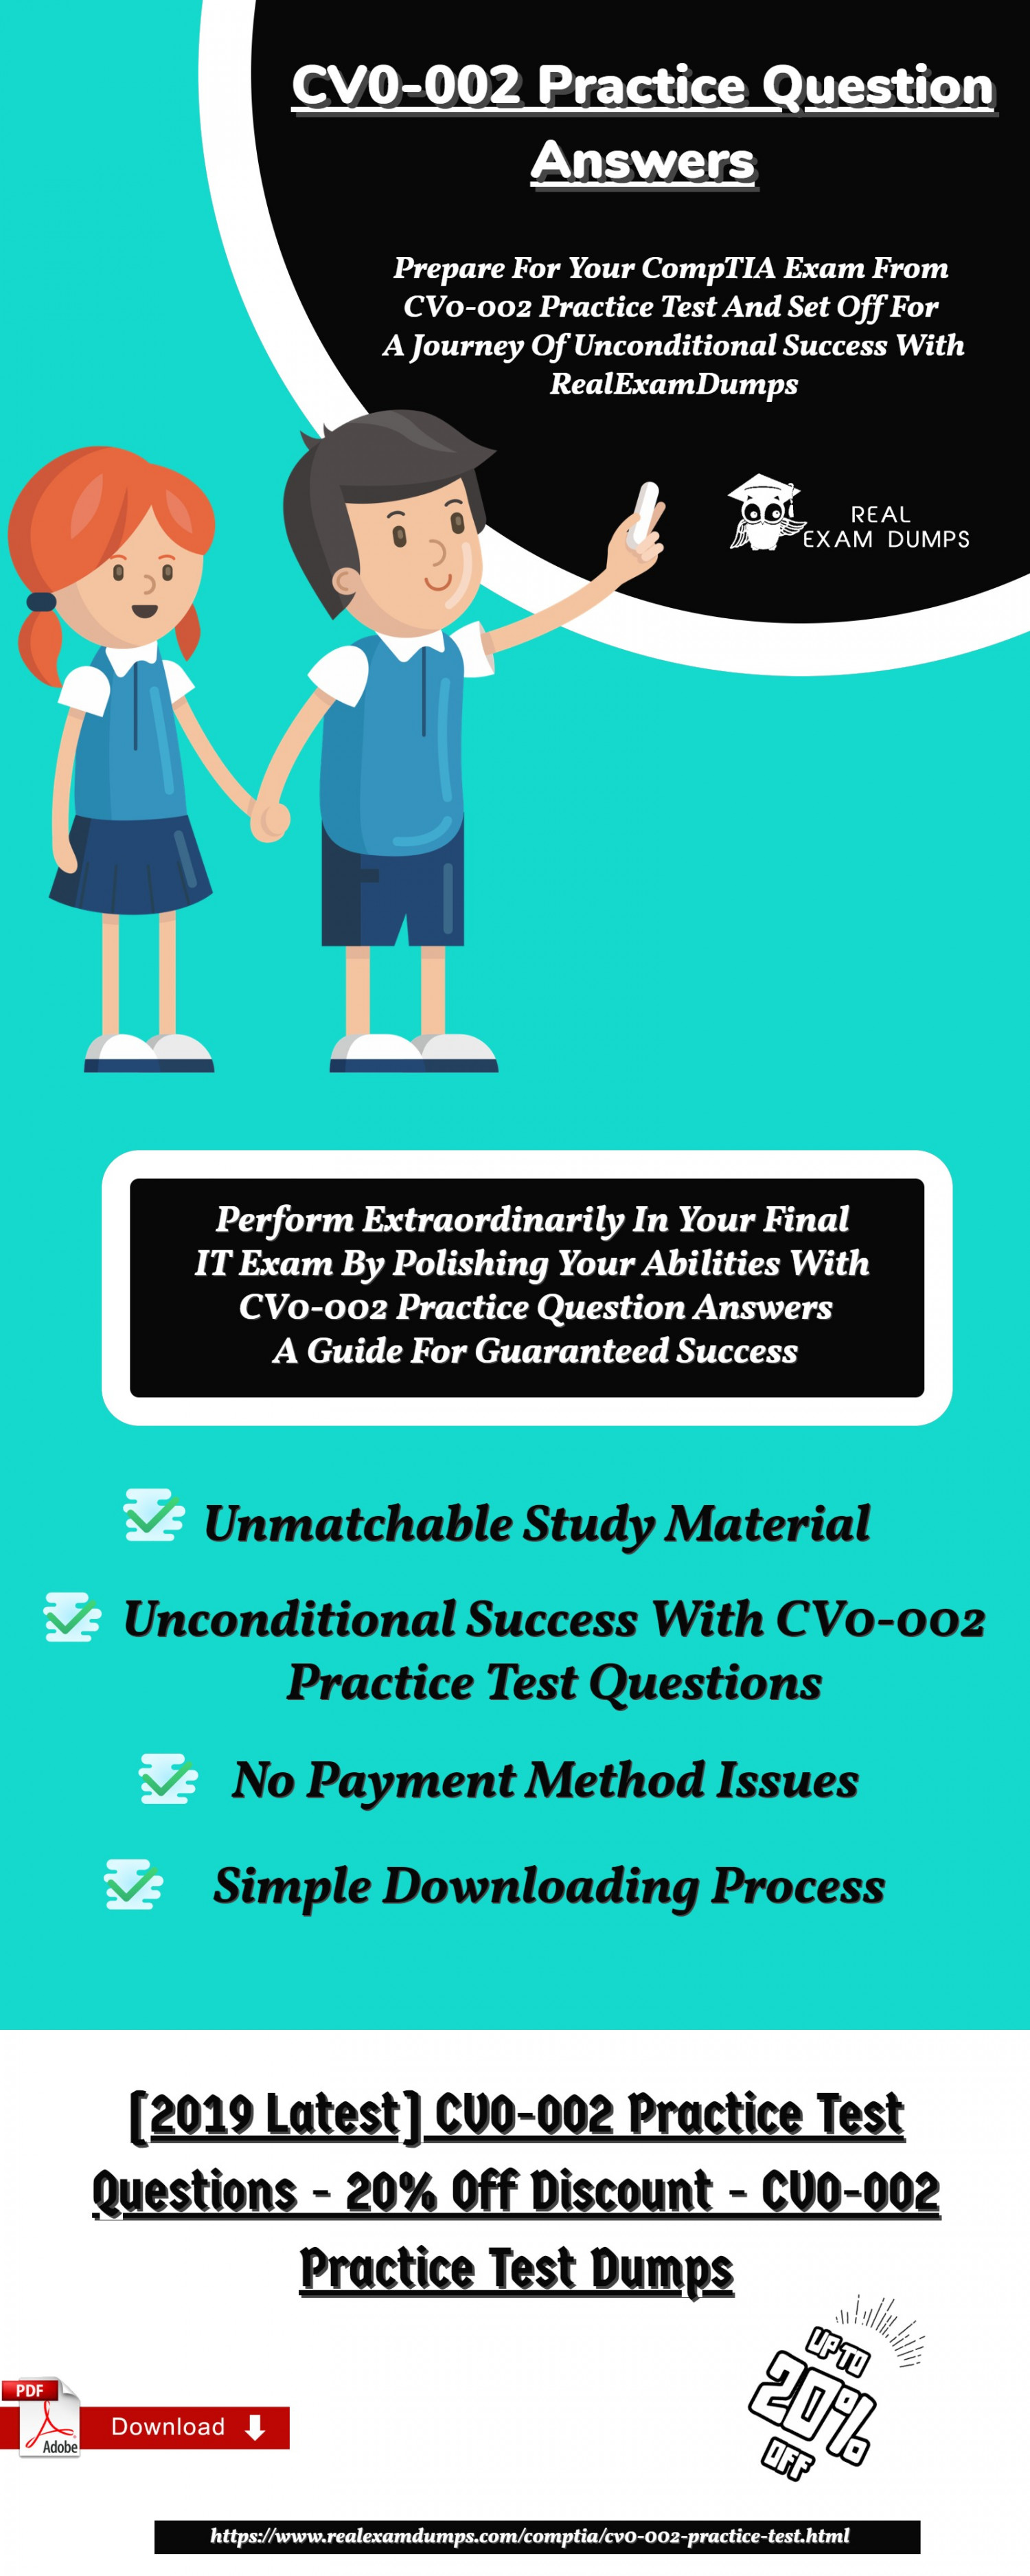 Get Latest CompTIA CV0-002 Practice Test Dumps -  CV0-002 Practice Question -Realexamdumps.com Infographic